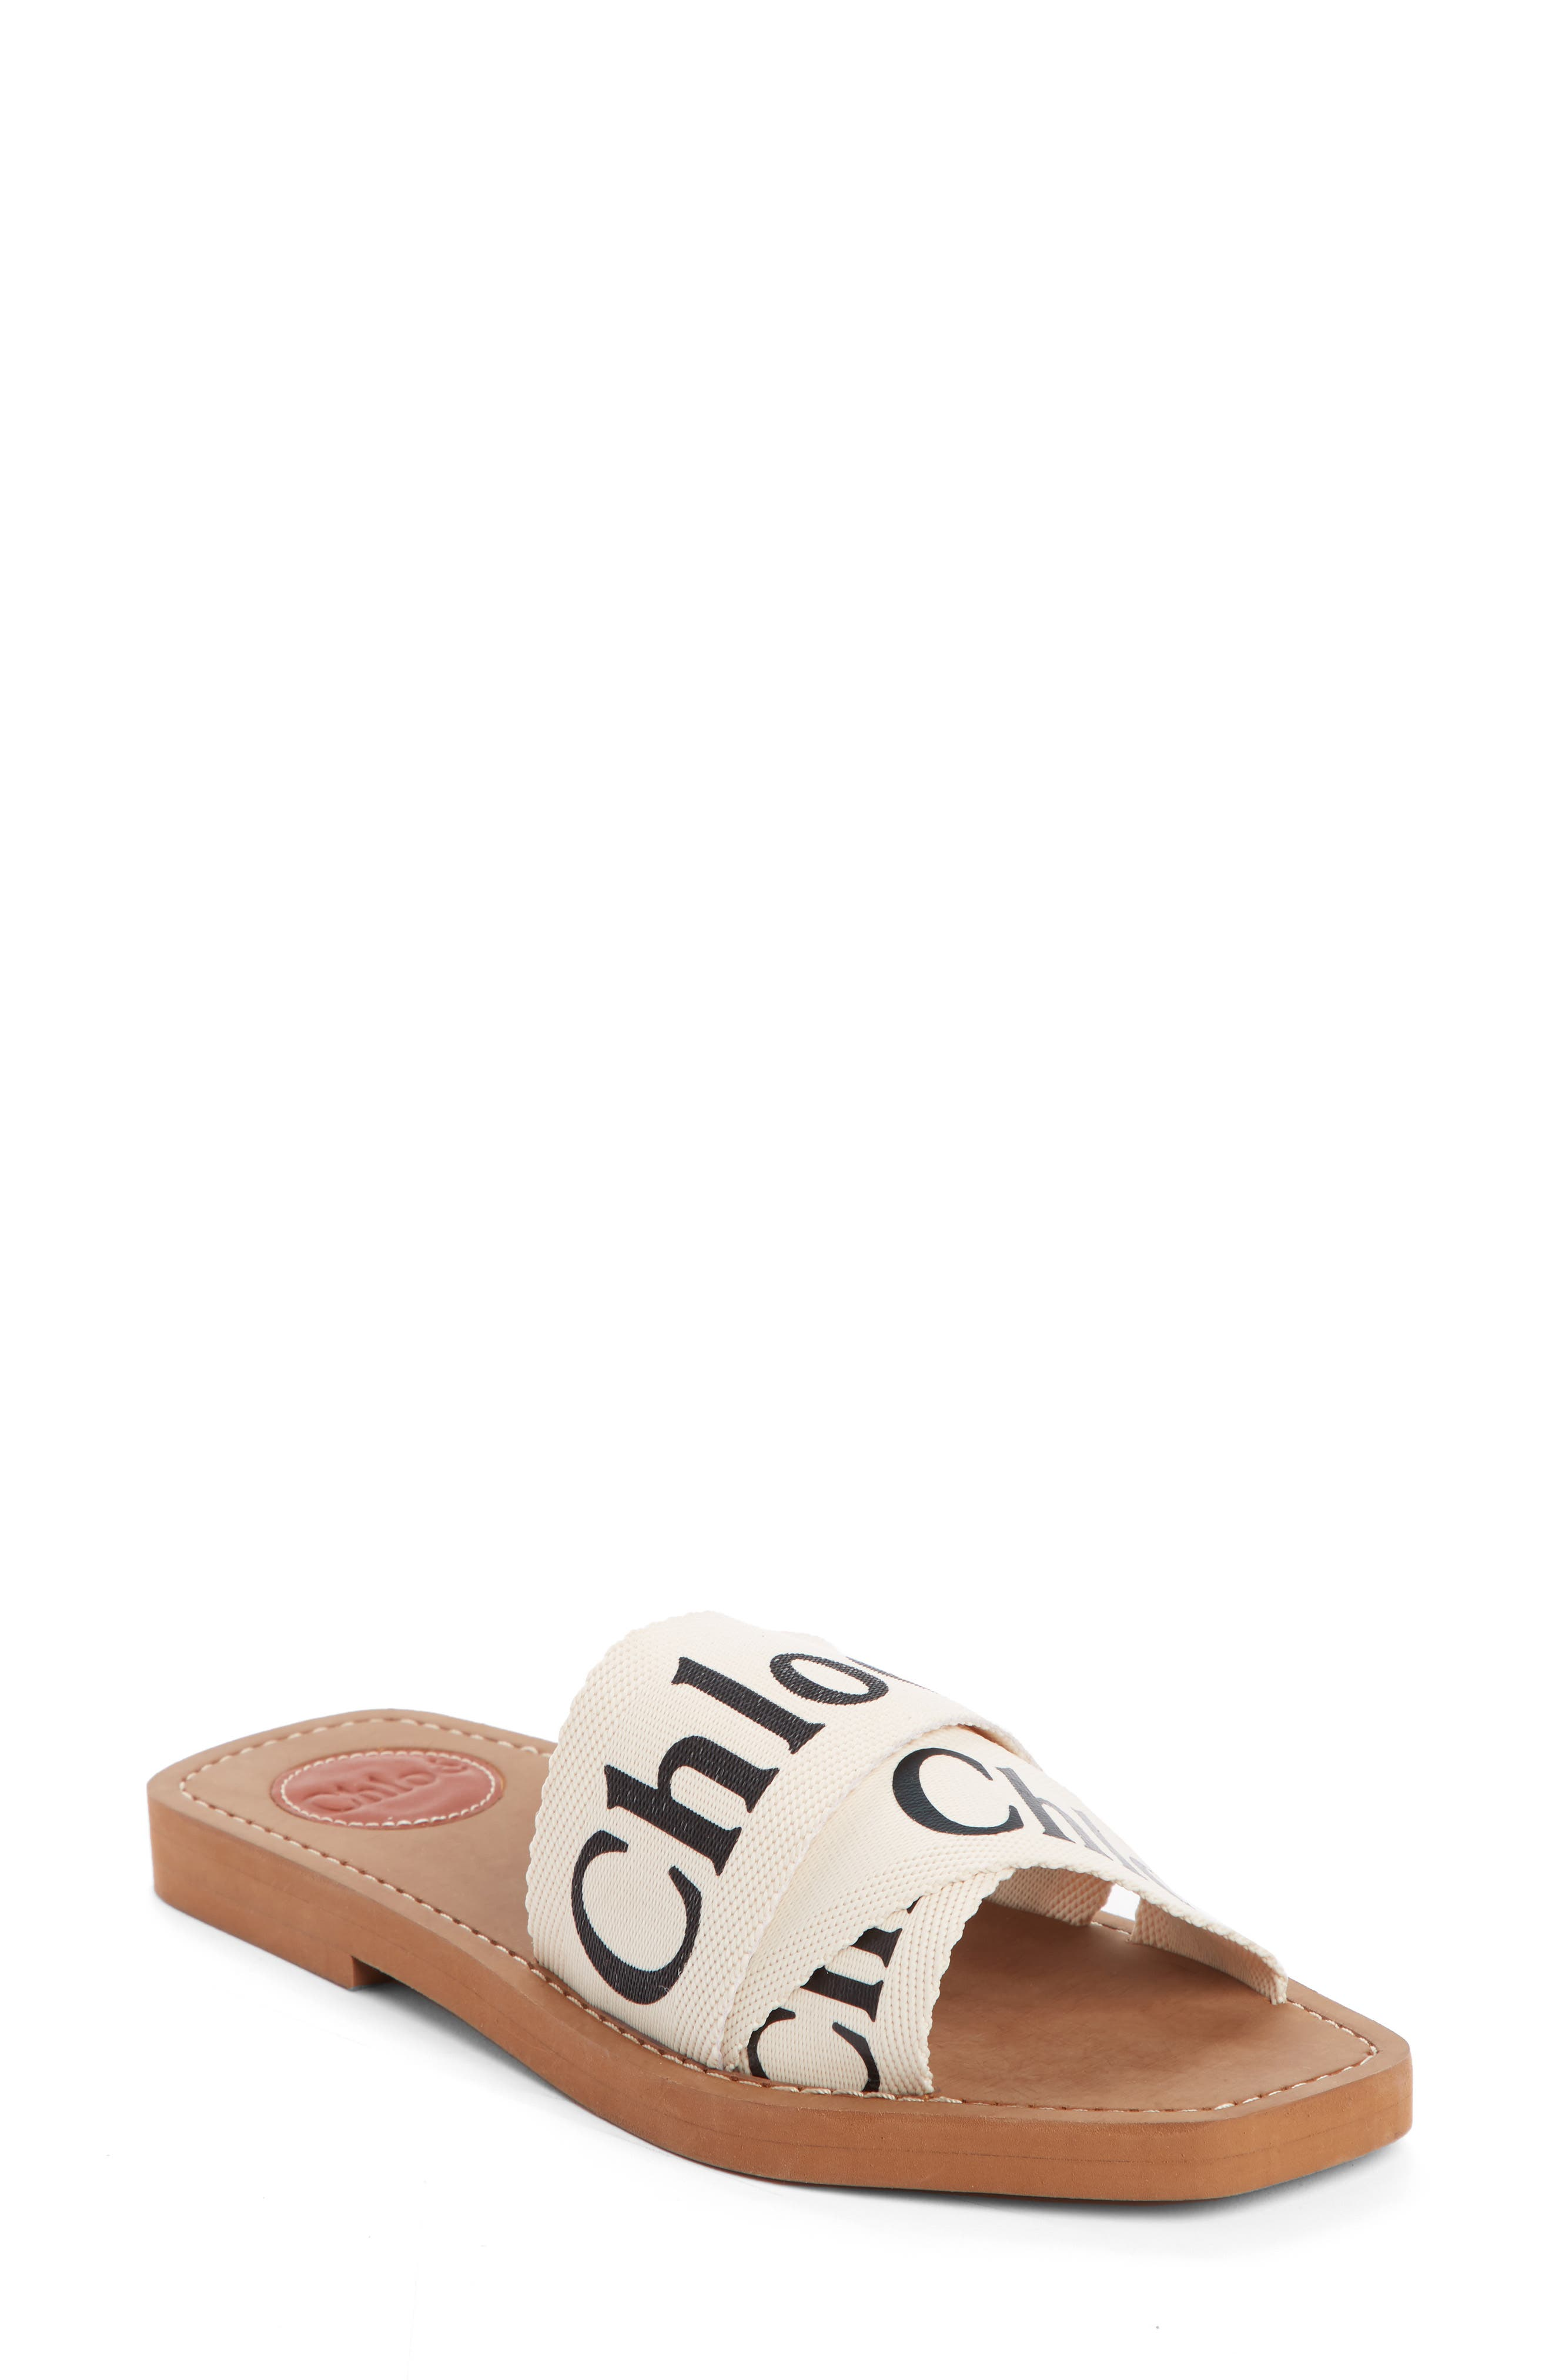 Women S Chloe Sandals